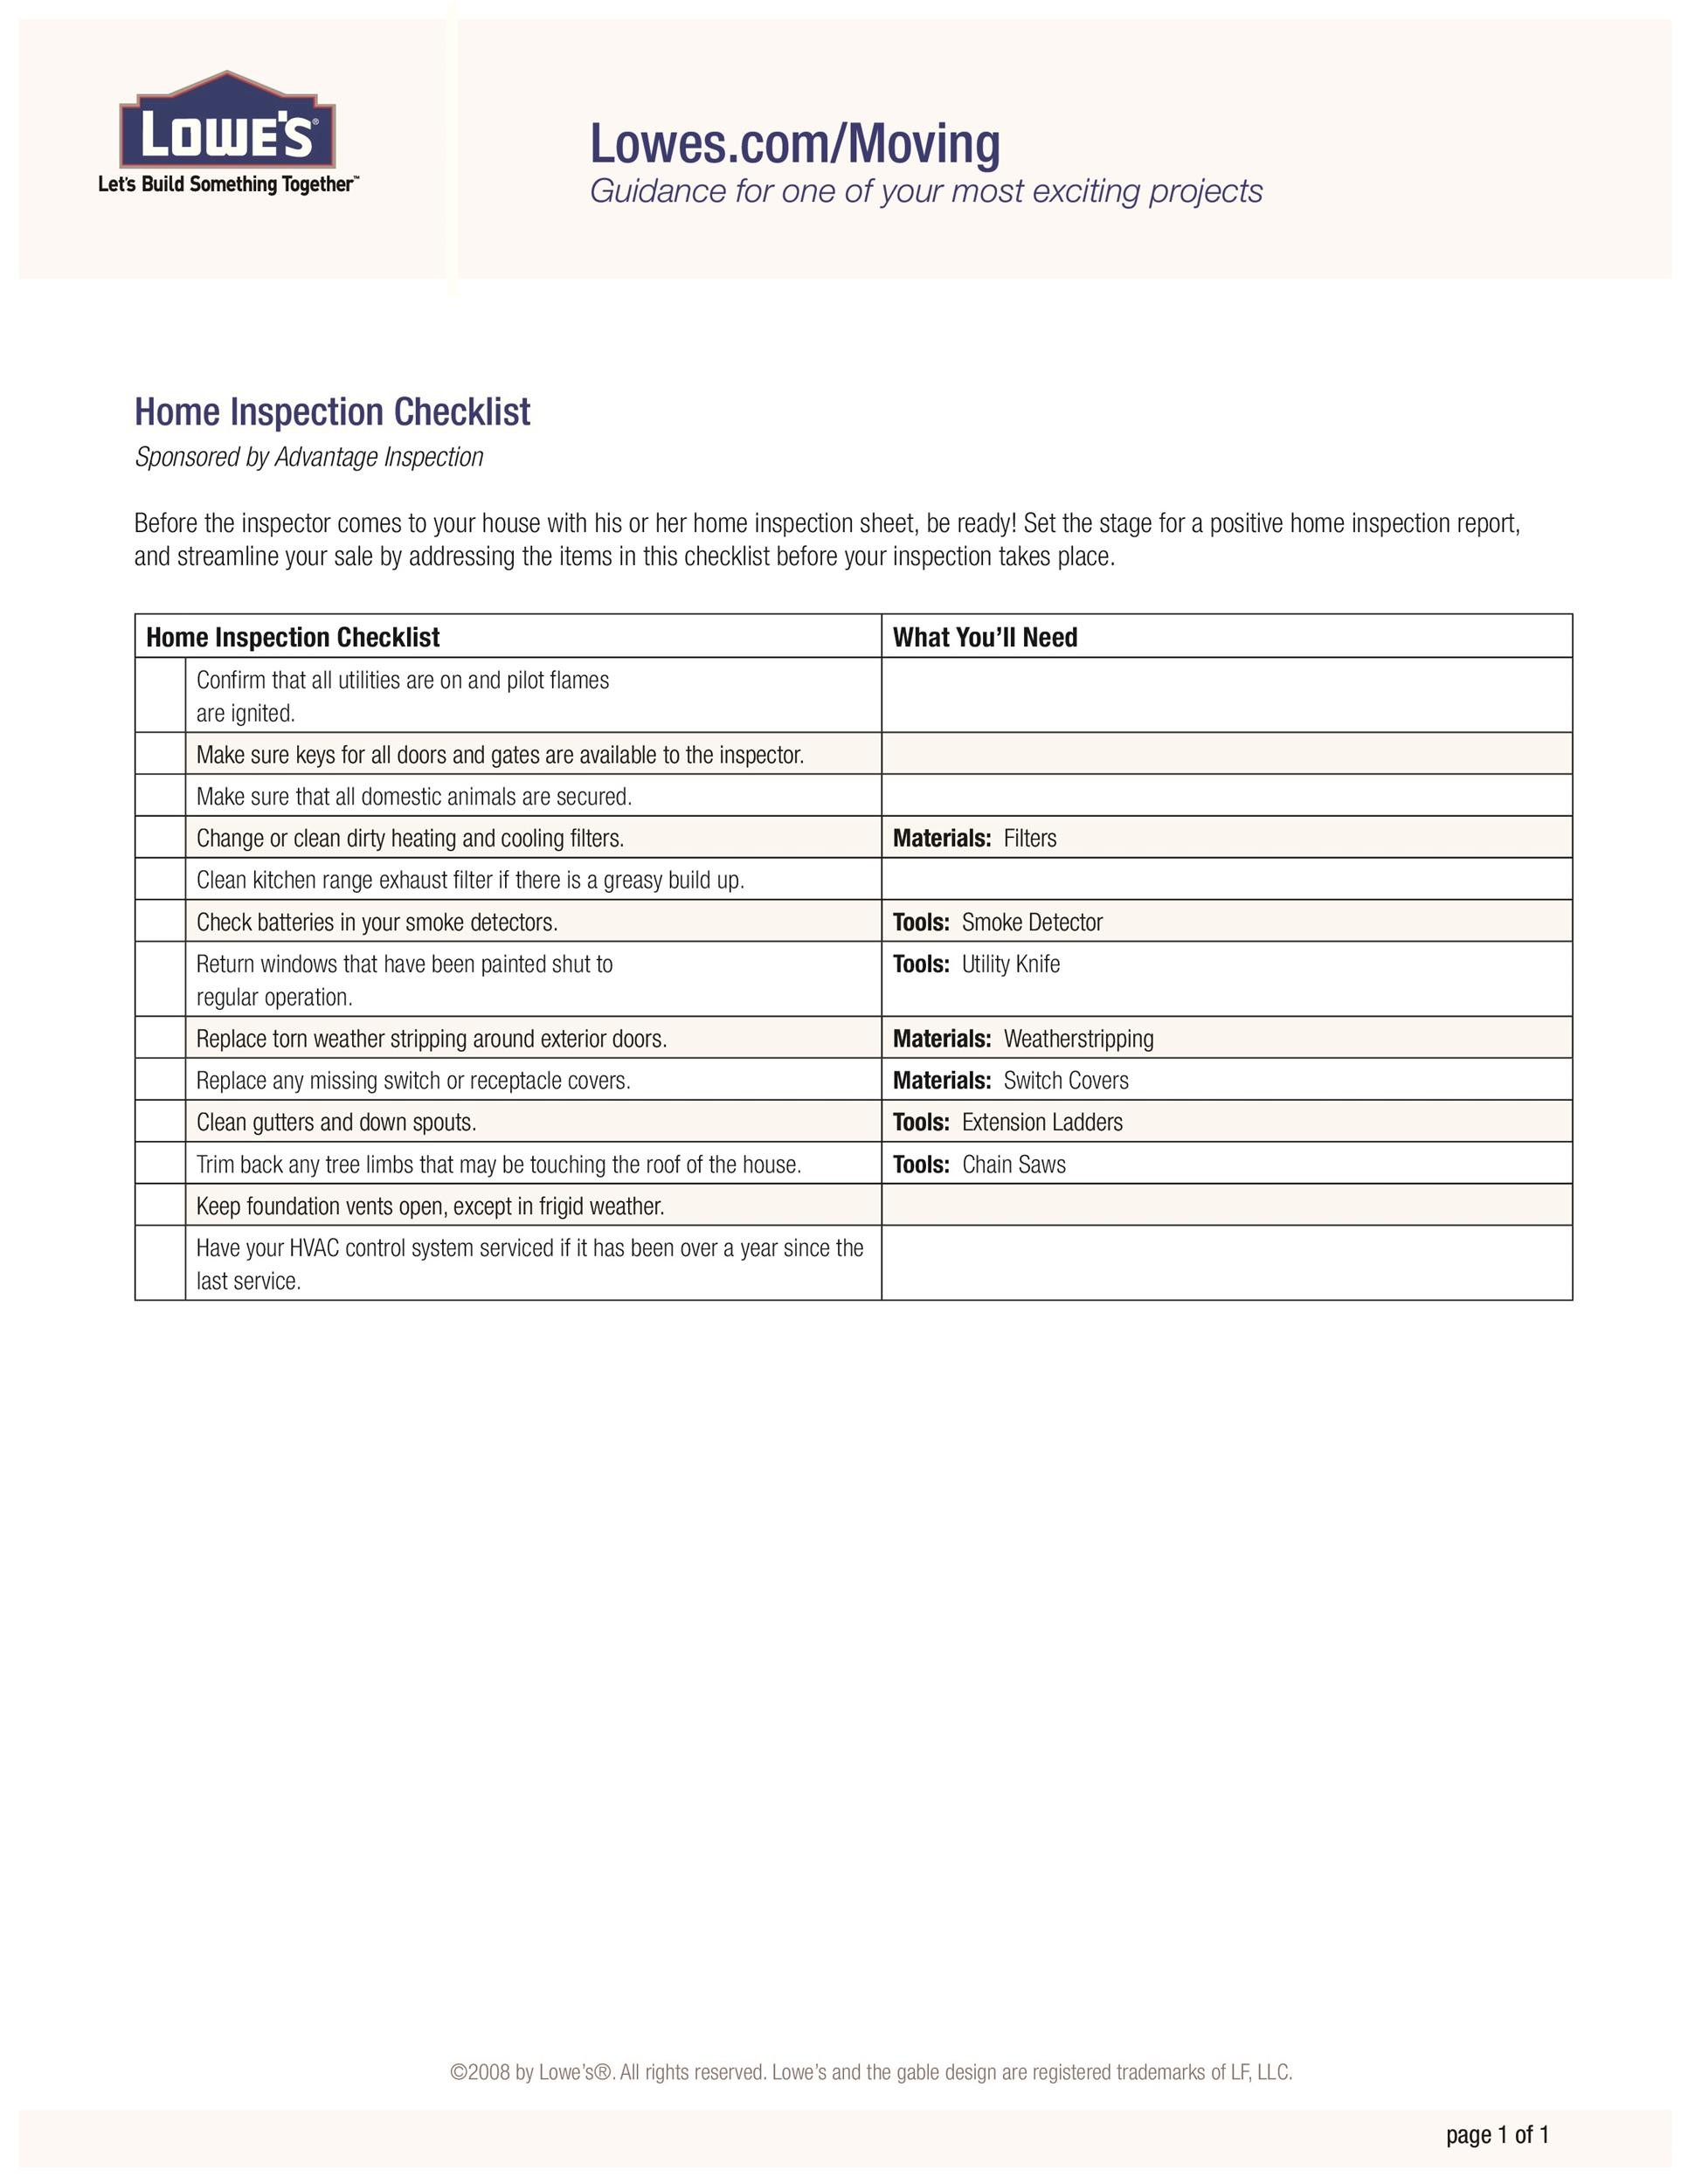 Free Home Inspection Checklist 17